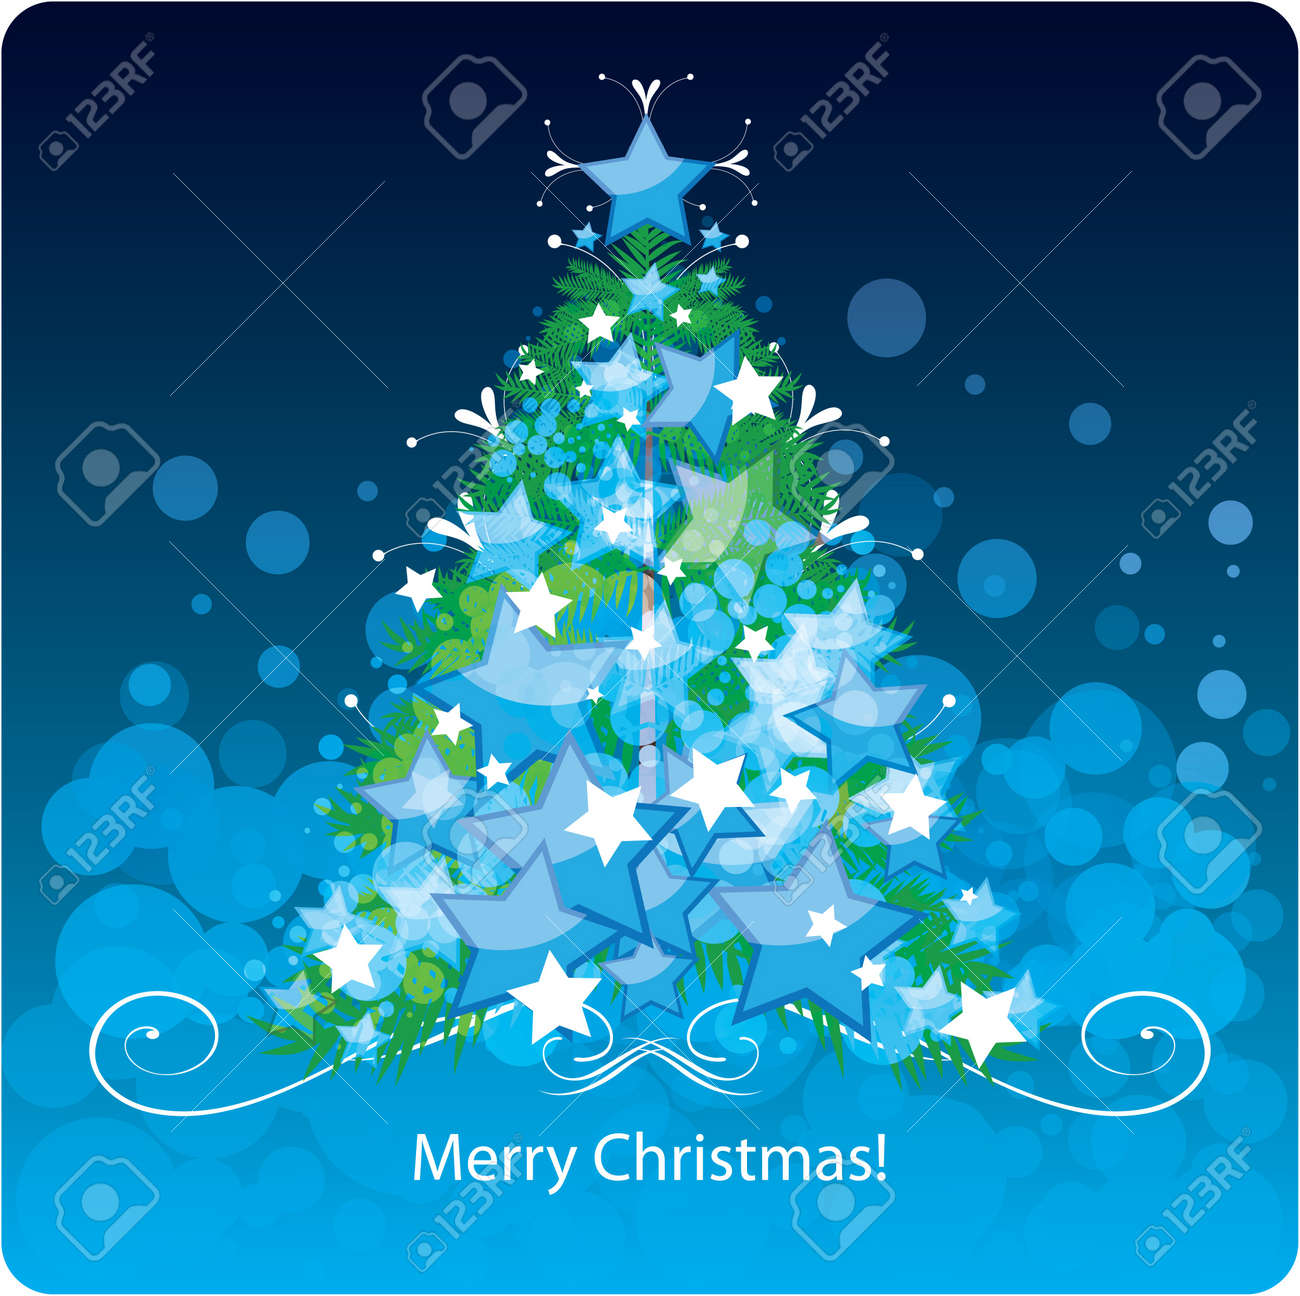 Christmas Tree Greetings Card Royalty Free Cliparts Vectors And